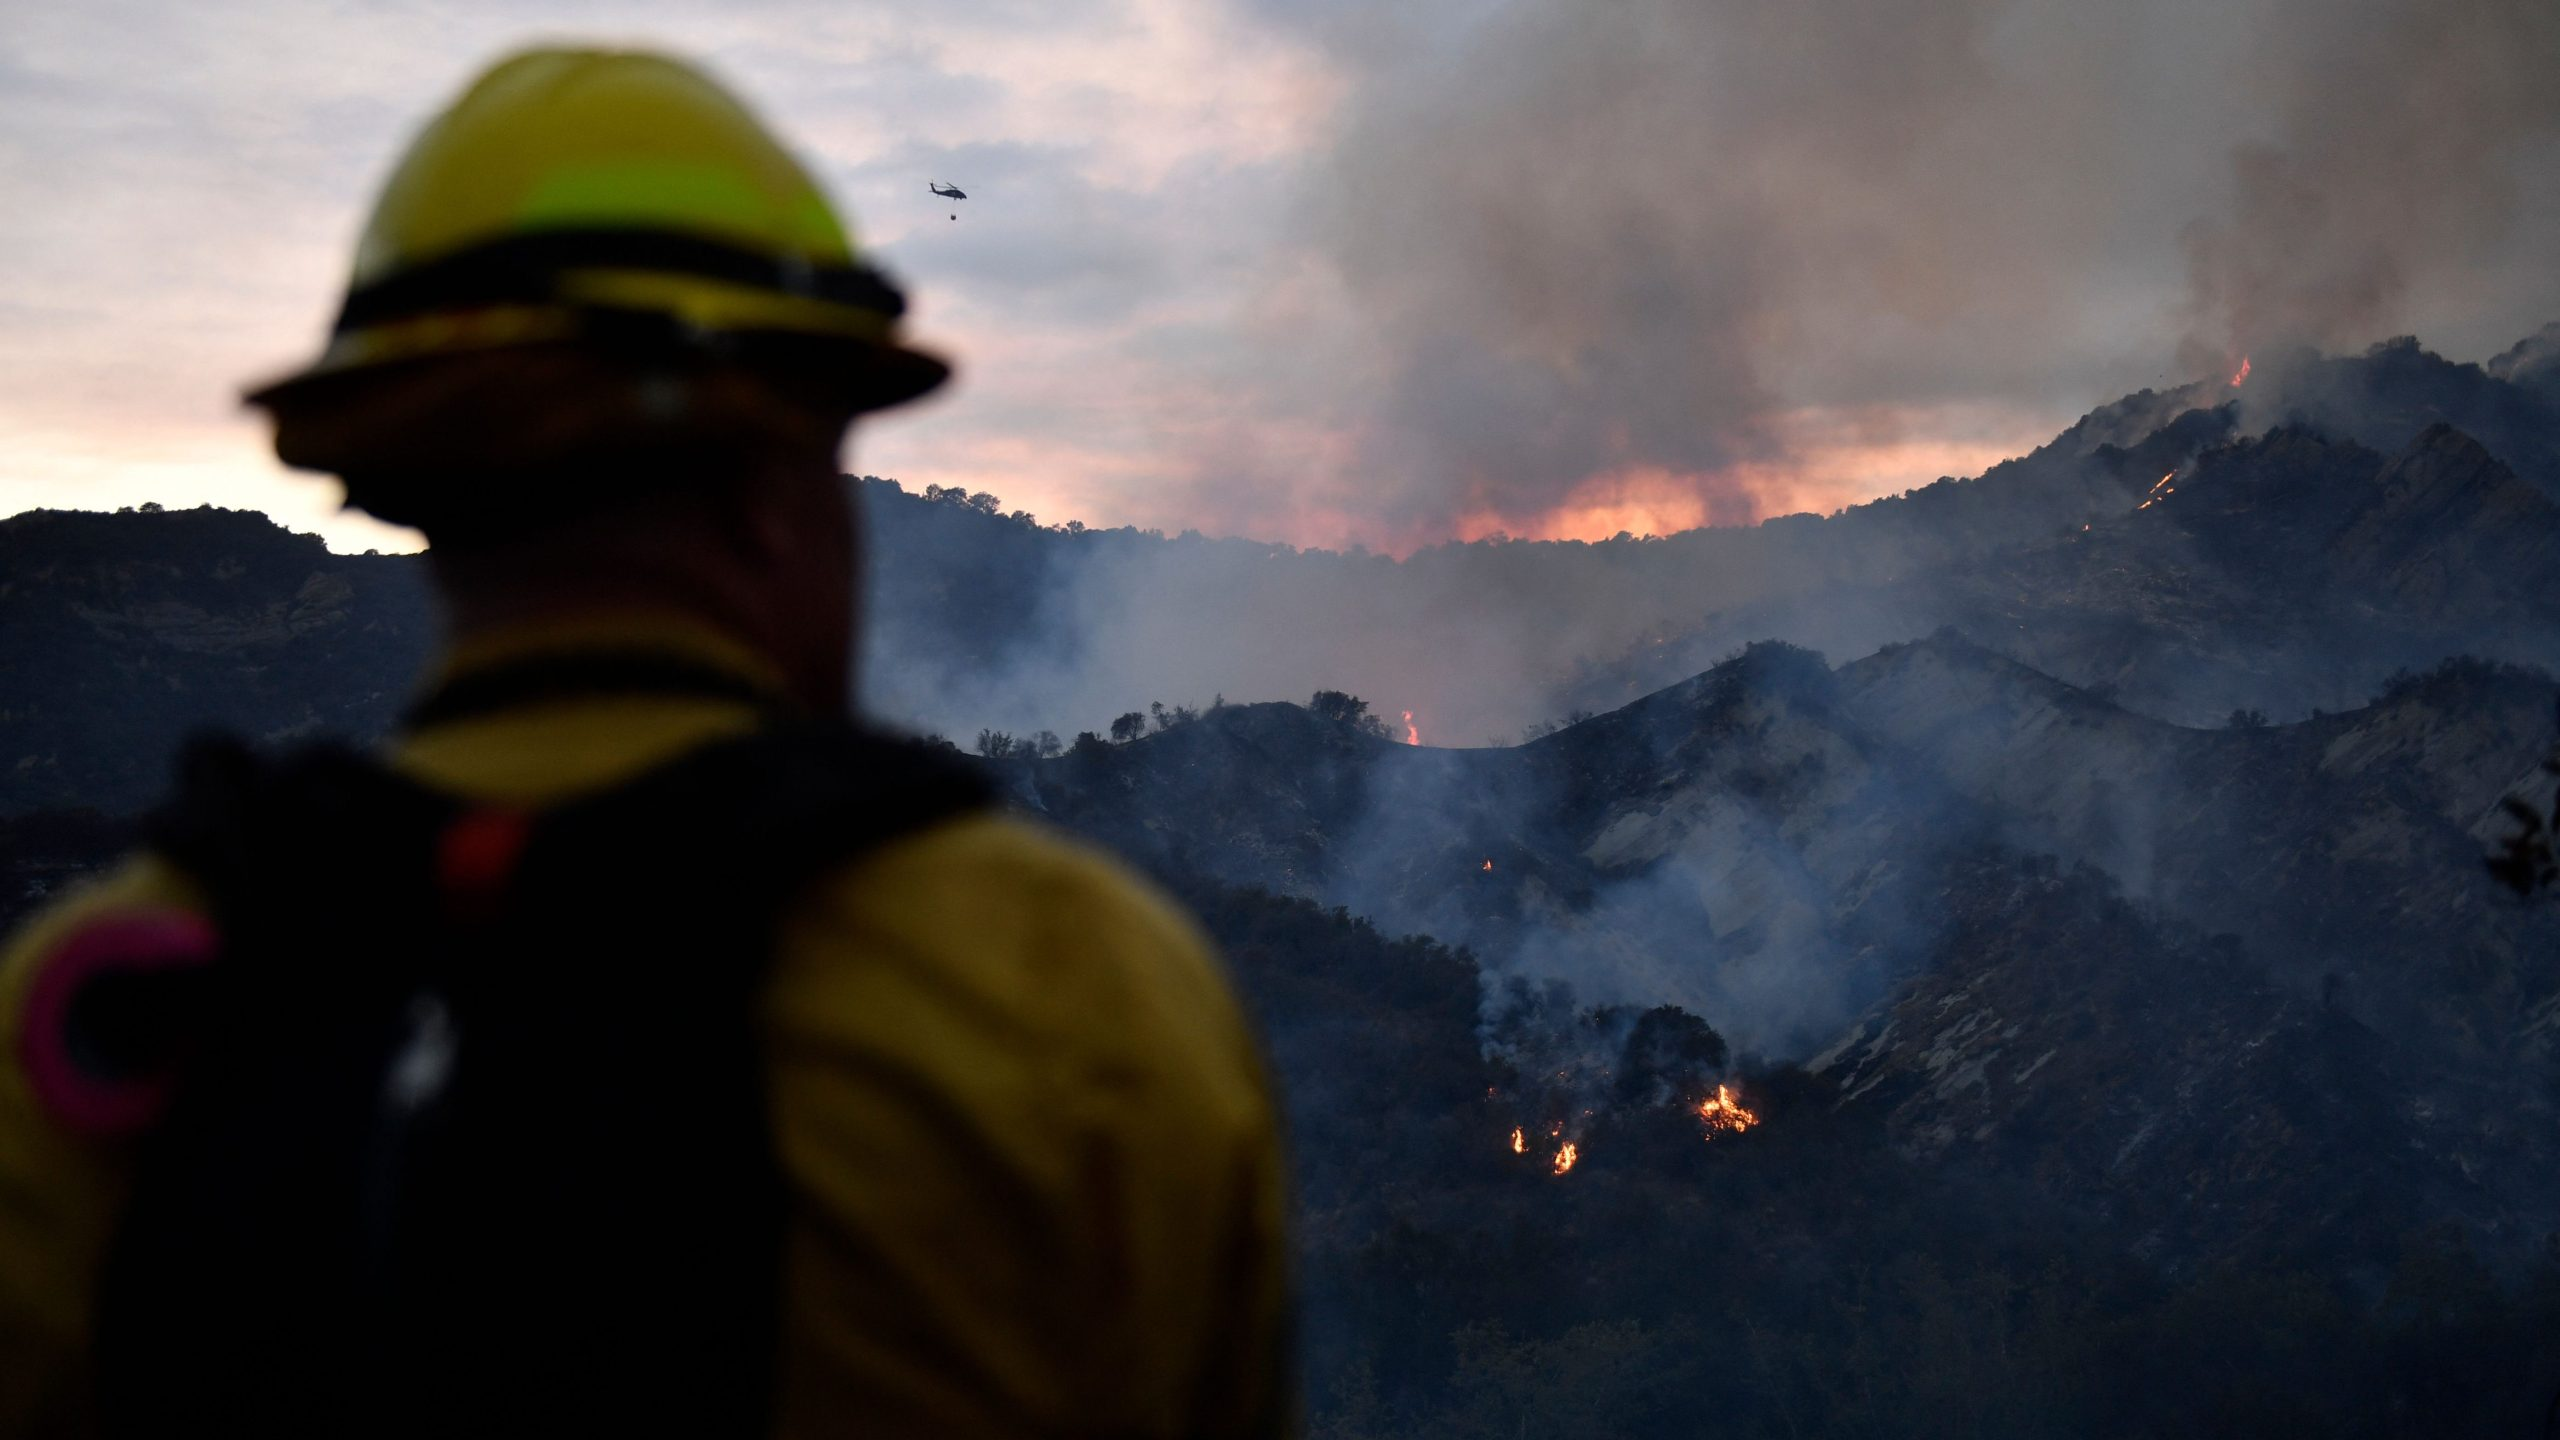 A firefighter watches the flames from the Palisades Fire as helicopters make water drops in the distance in Topanga State Park, northwest of Los Angeles, on May 15, 2021. (PATRICK T. FALLON / AFP / Getty Images)